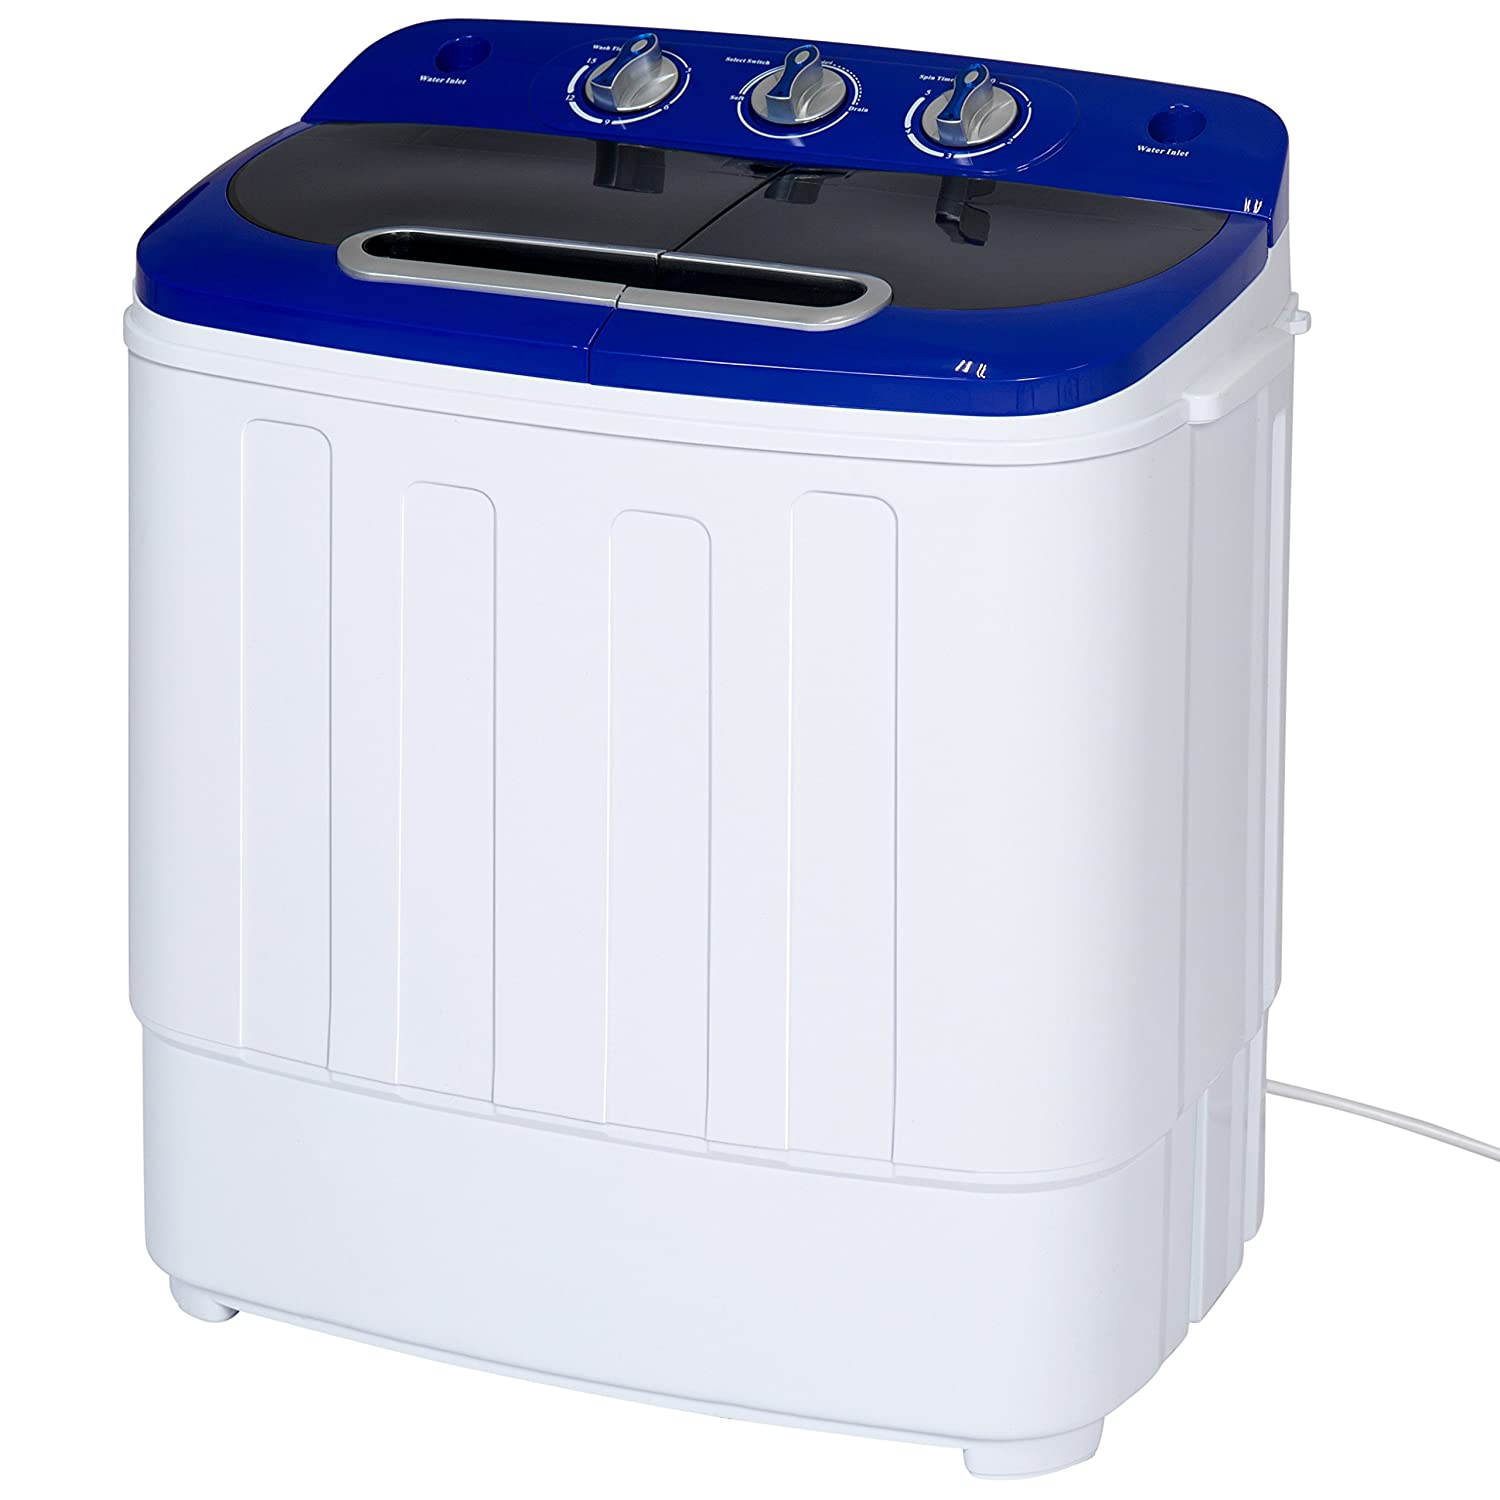 igloo mini fridge 1.7 manual